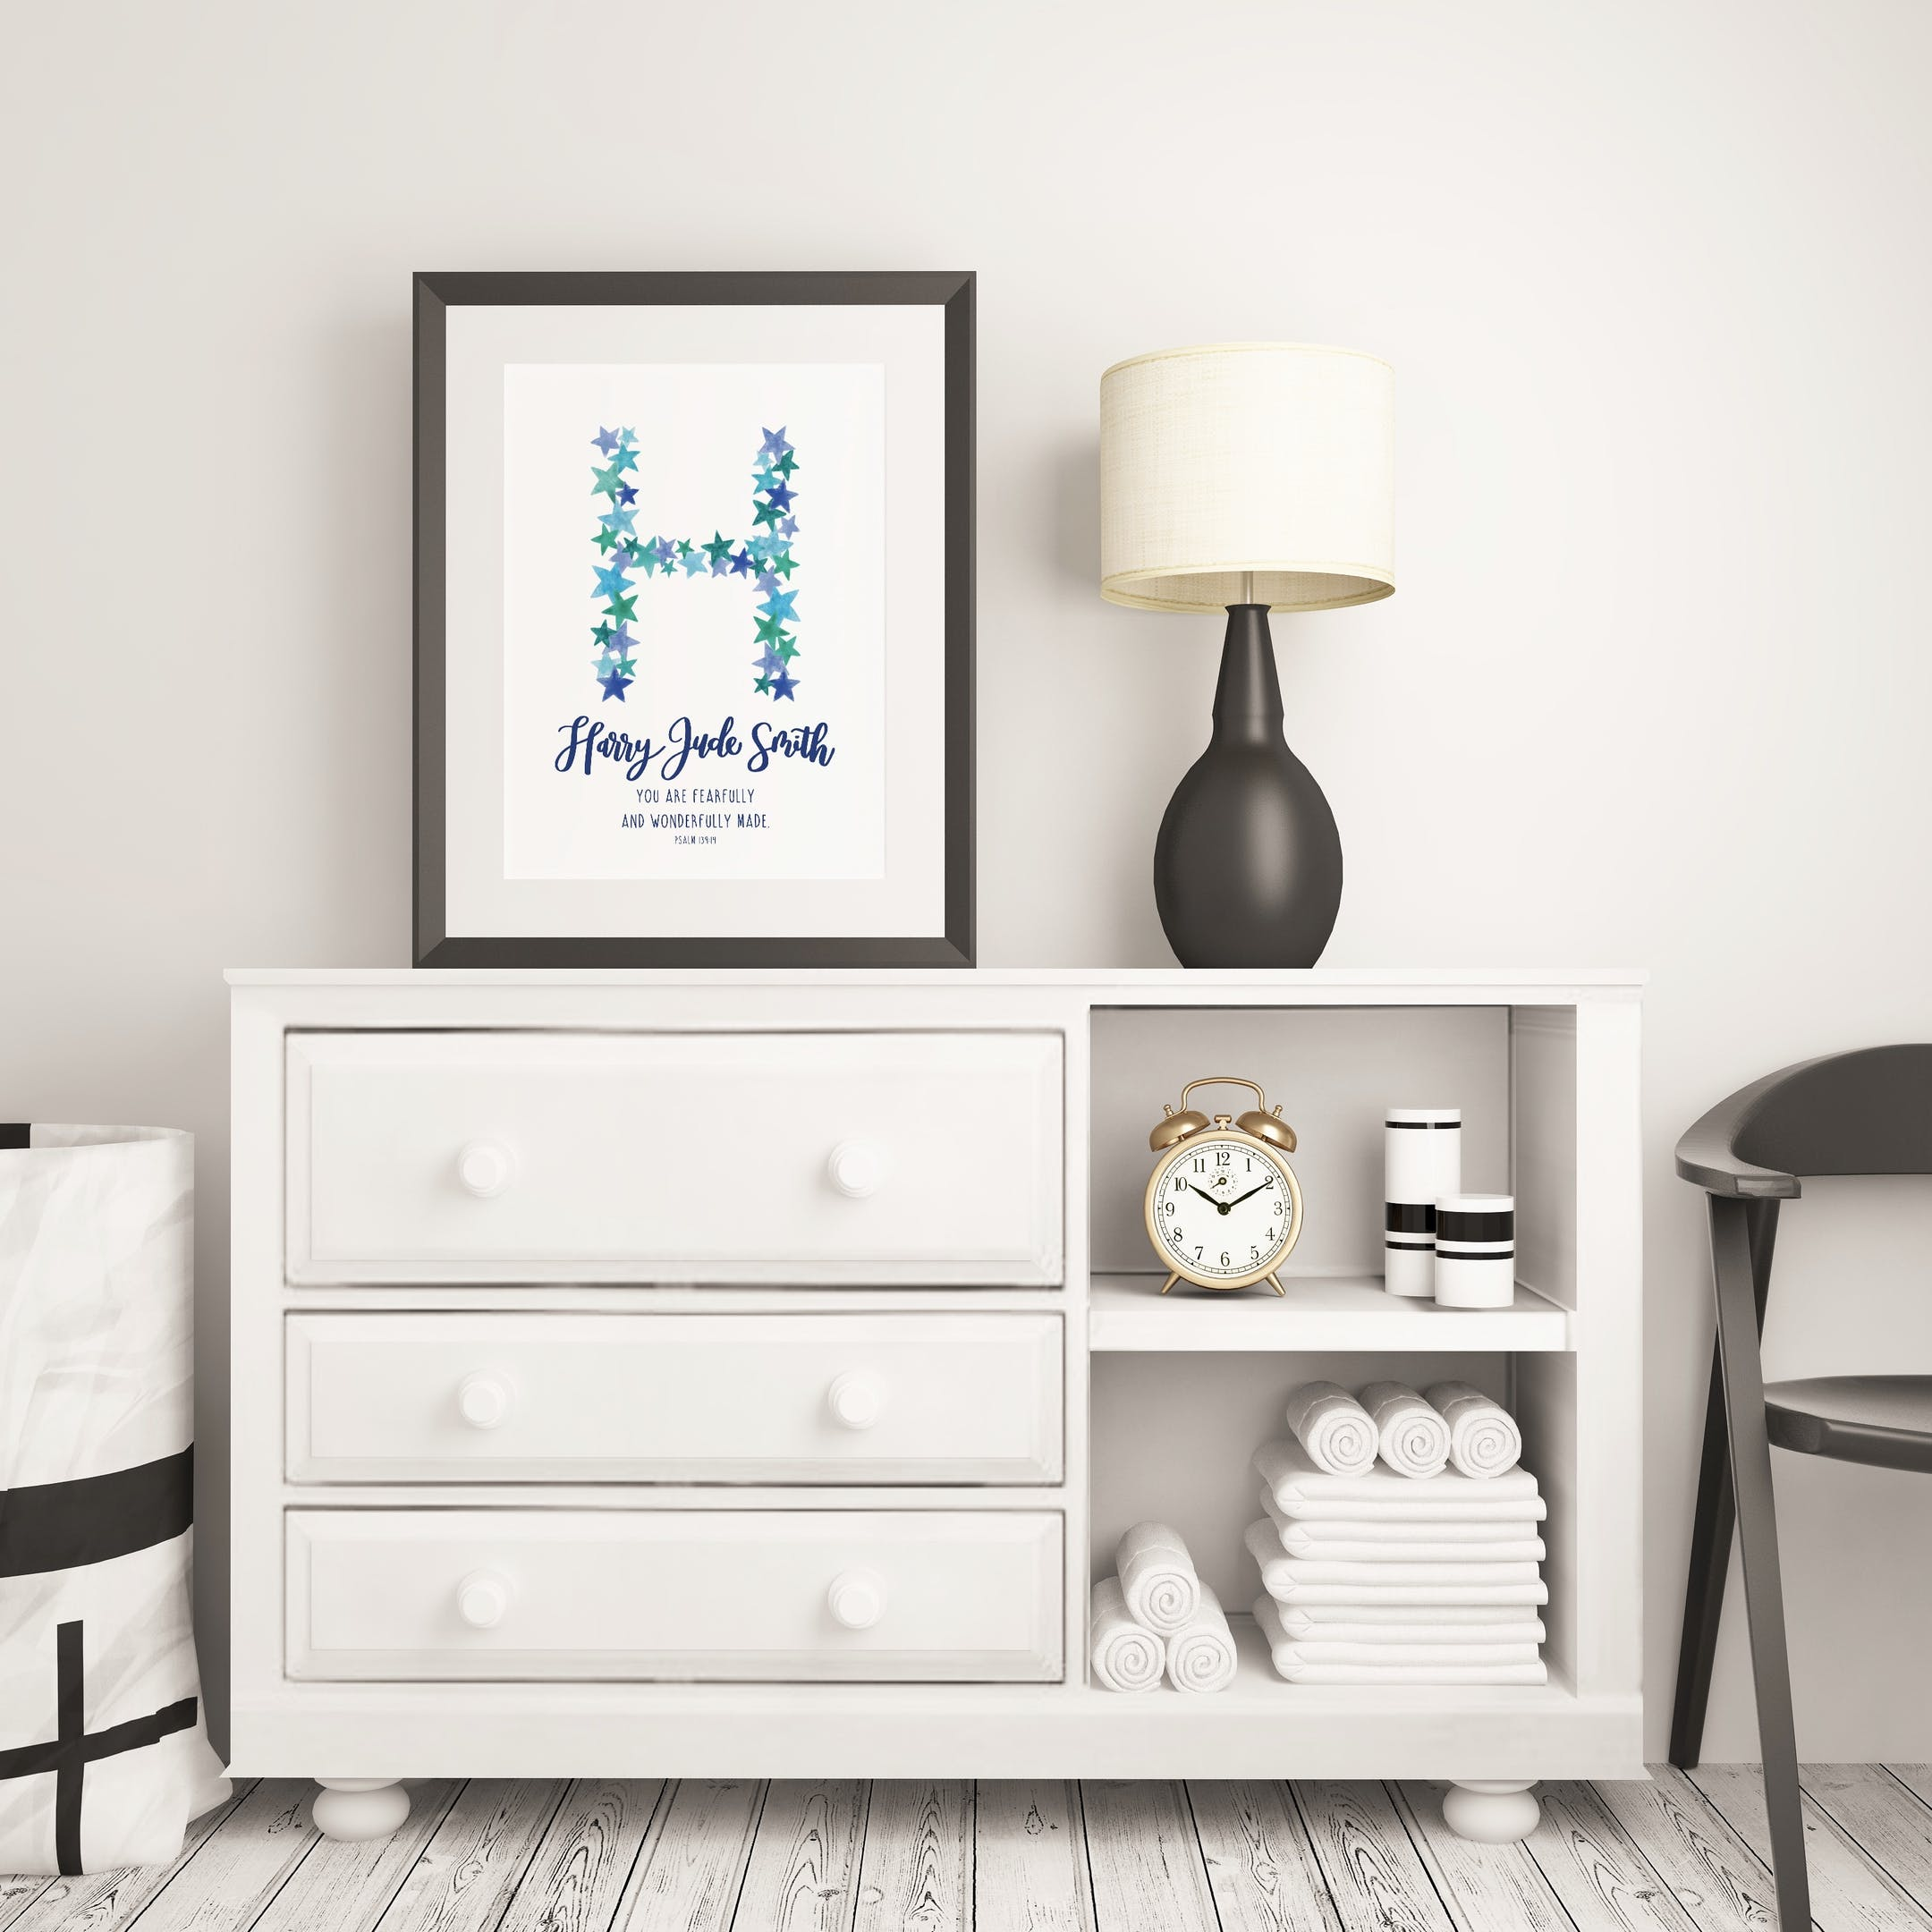 Baby Boy Name Print - Personalised Psalm 139:14 - Izzy and Pop